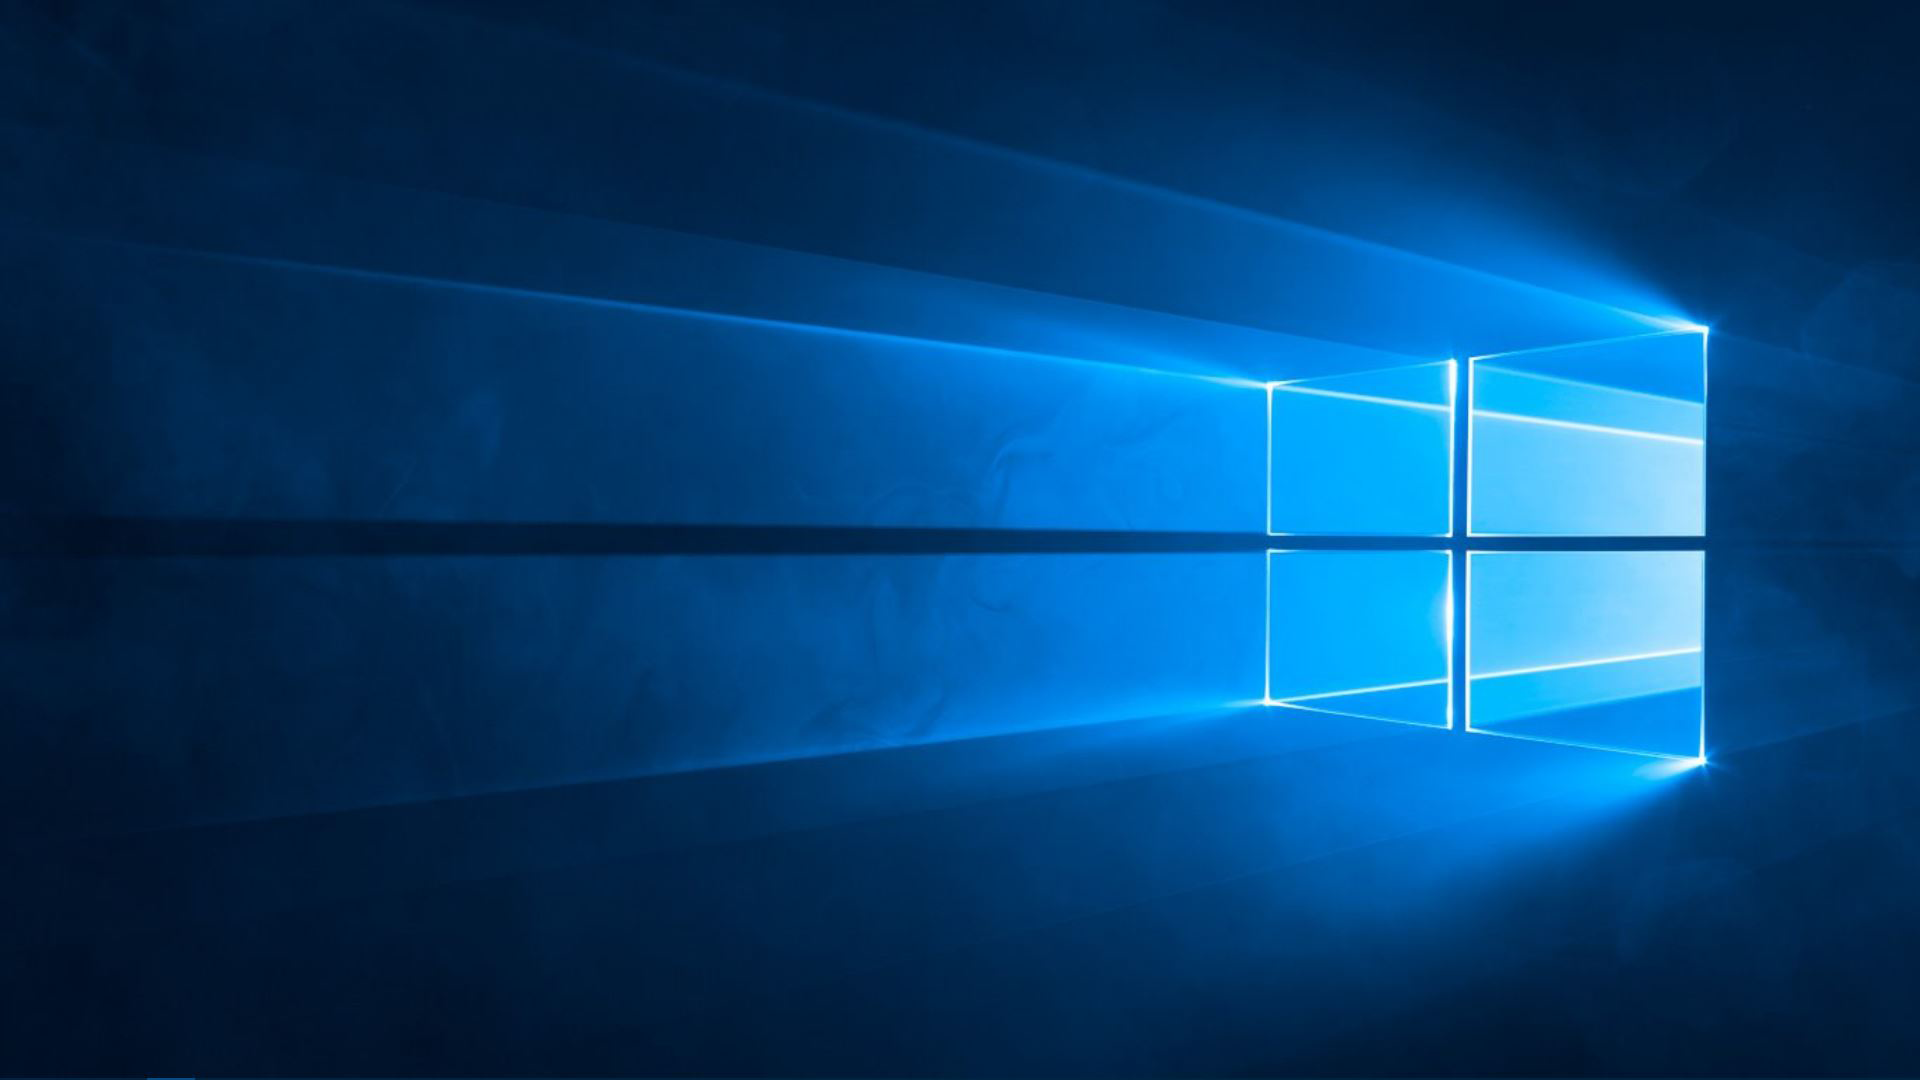 Windows 10 Original Wallpaper 1920x1080 Wallpaper Windows 10 Windows Wallpaper Windows 10 Logo